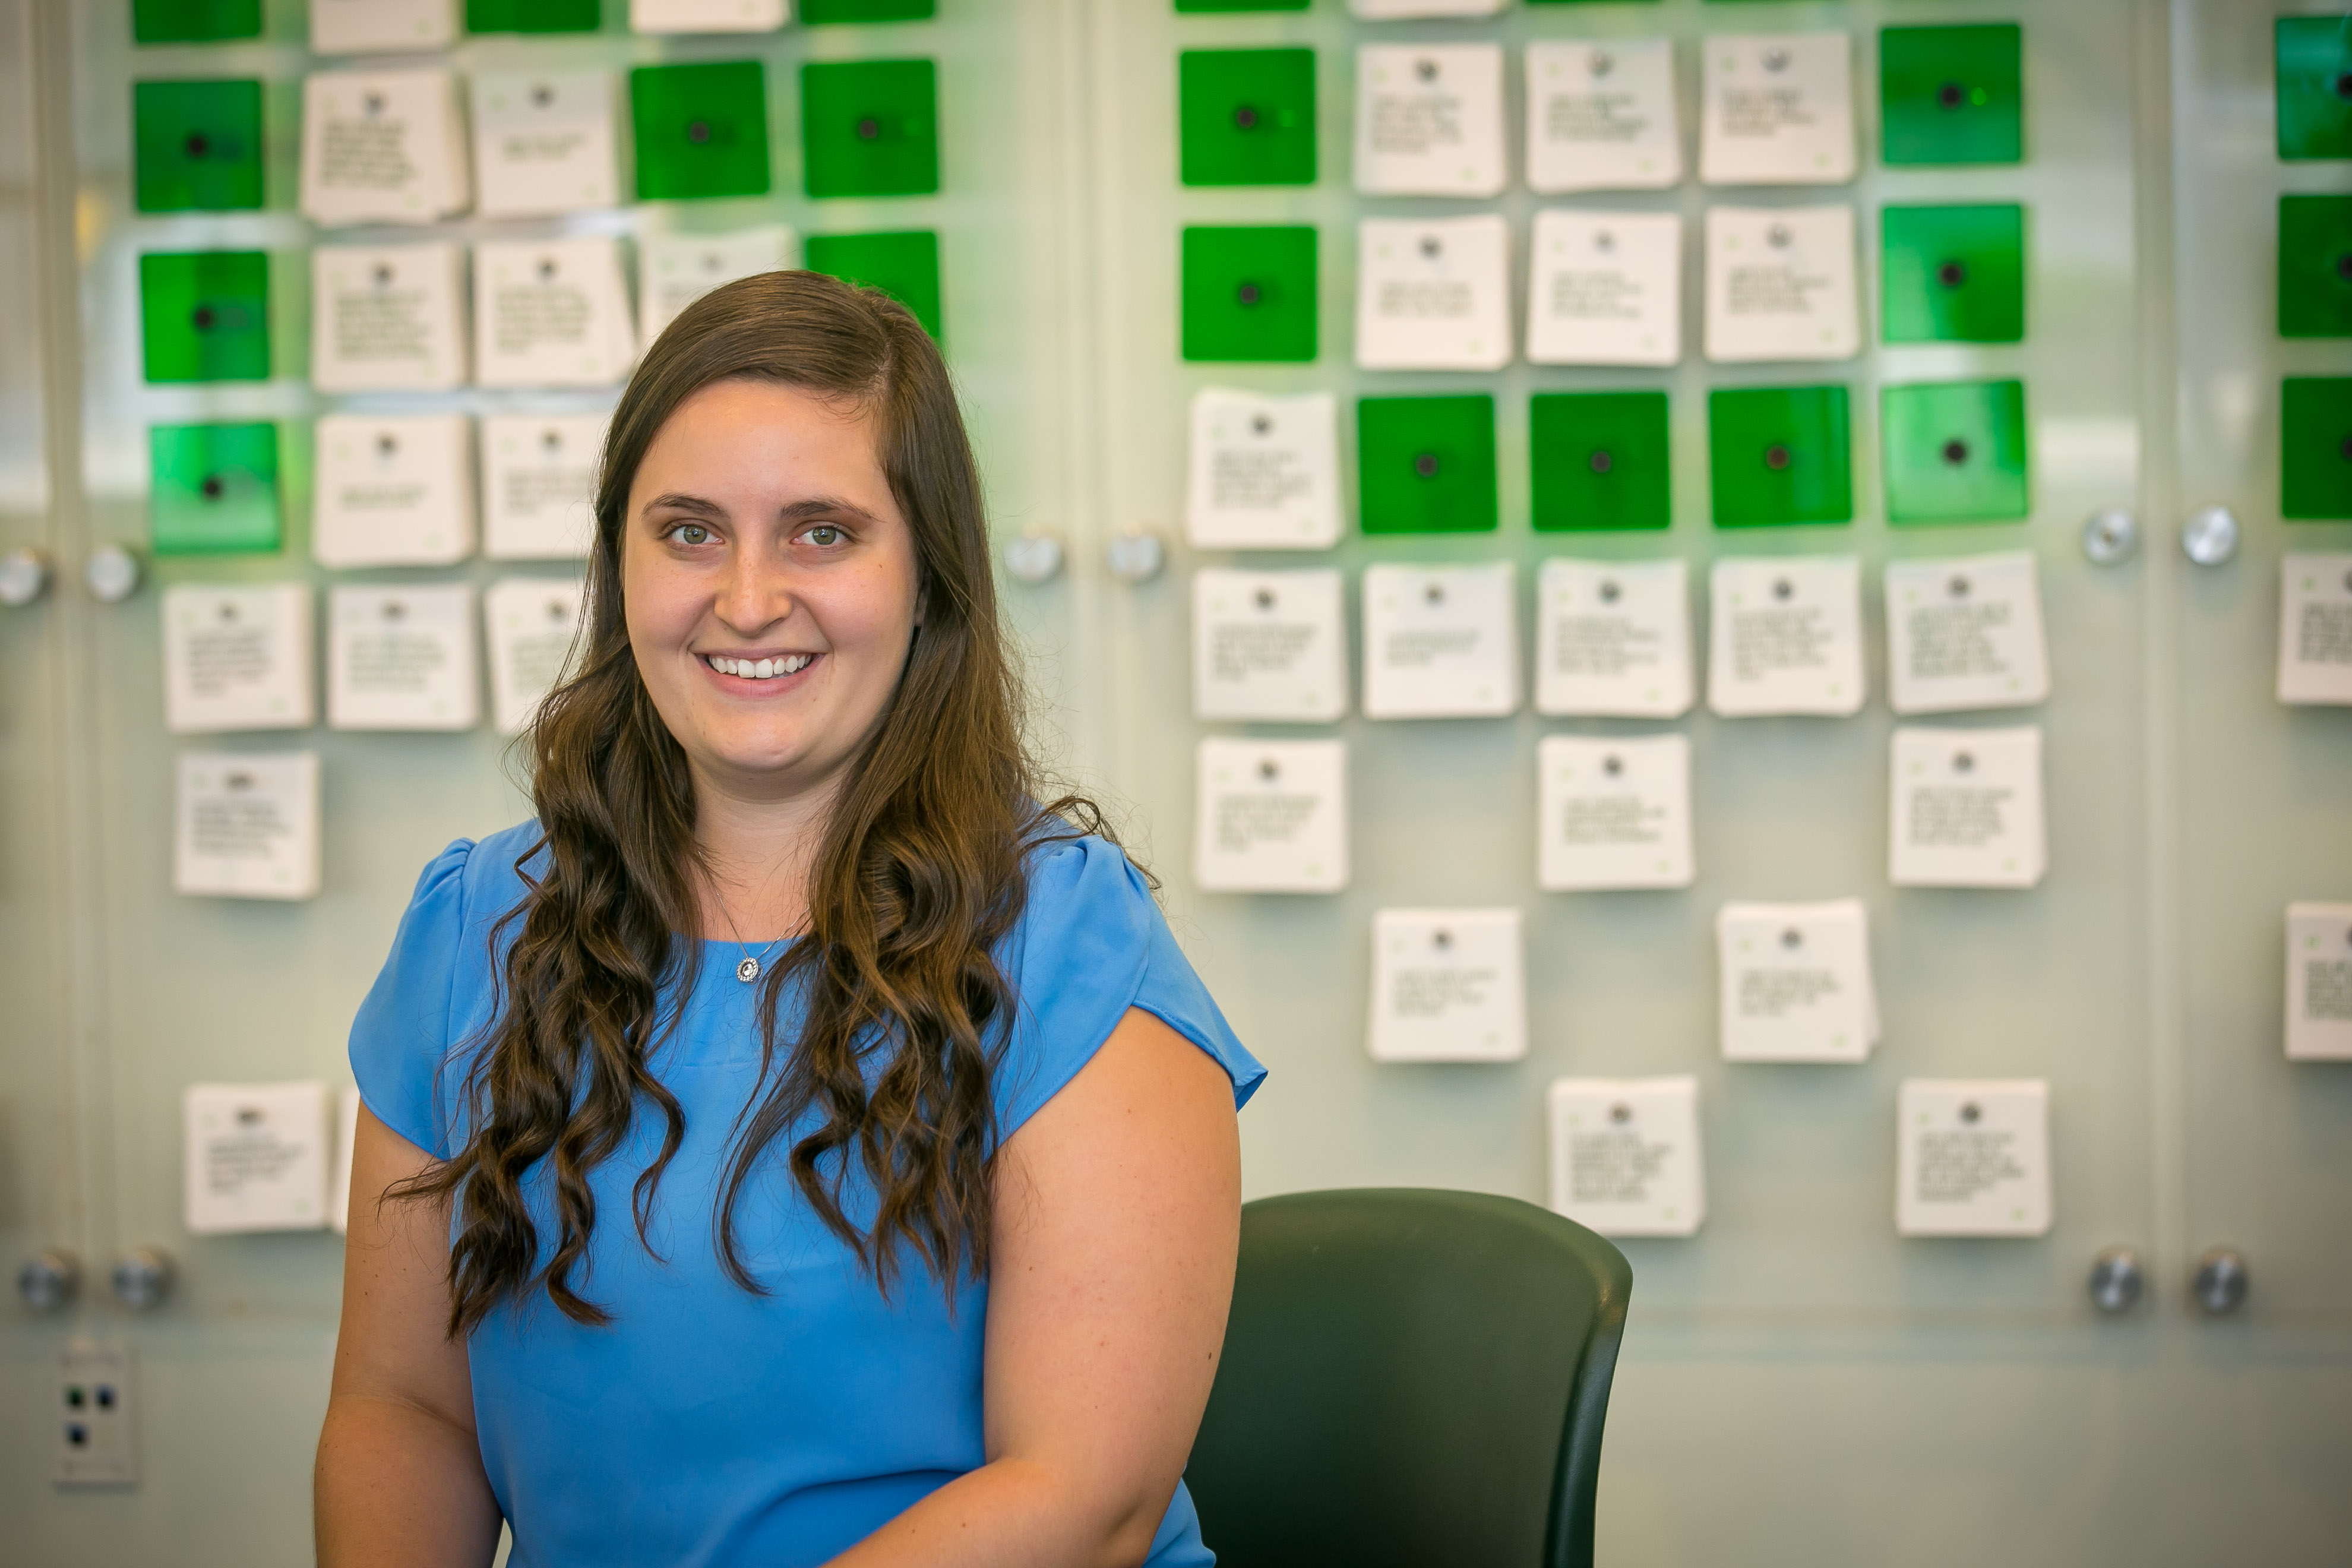 Image of Admissions Counselor Rachel Klacza